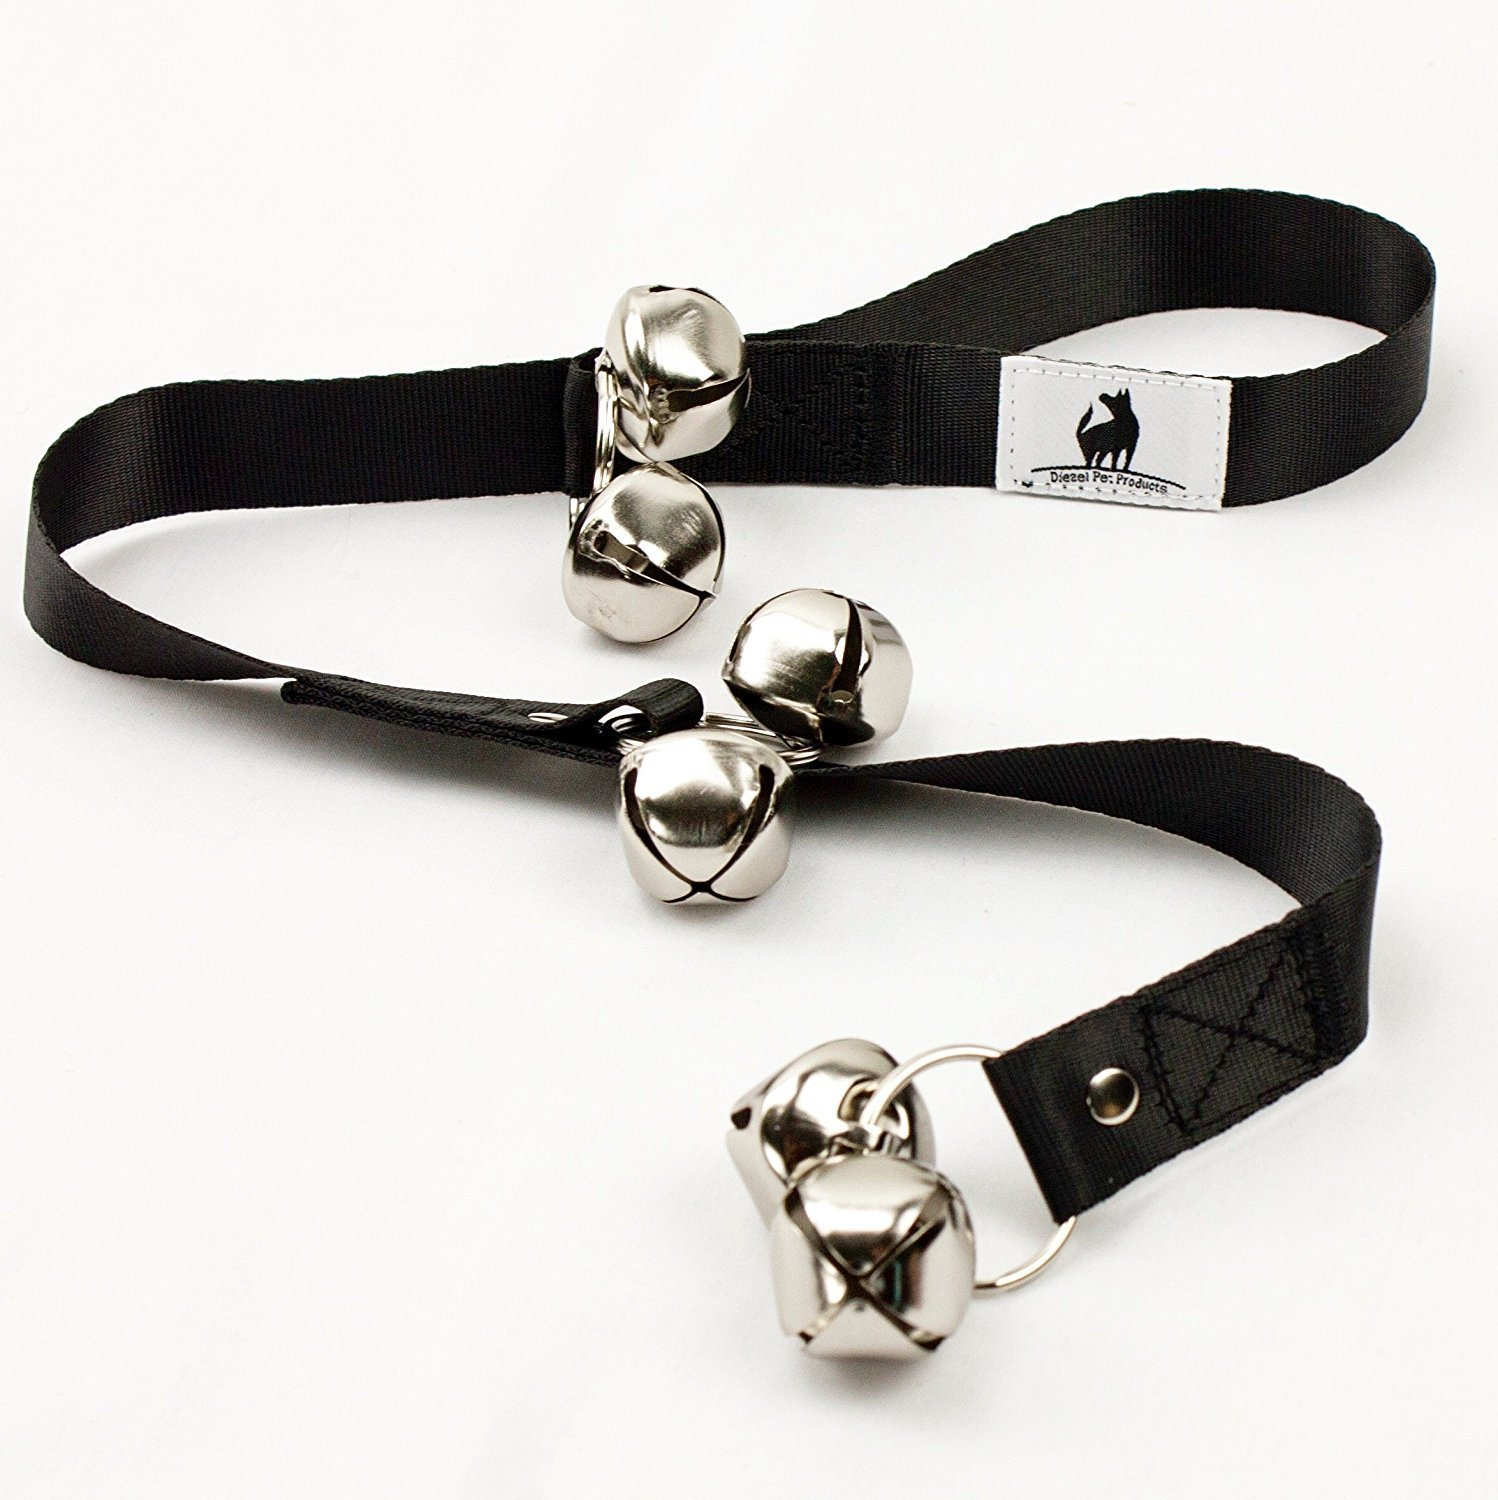 Dog Bells For Potty Training Puppy This Door Bell For Dog To Ring To